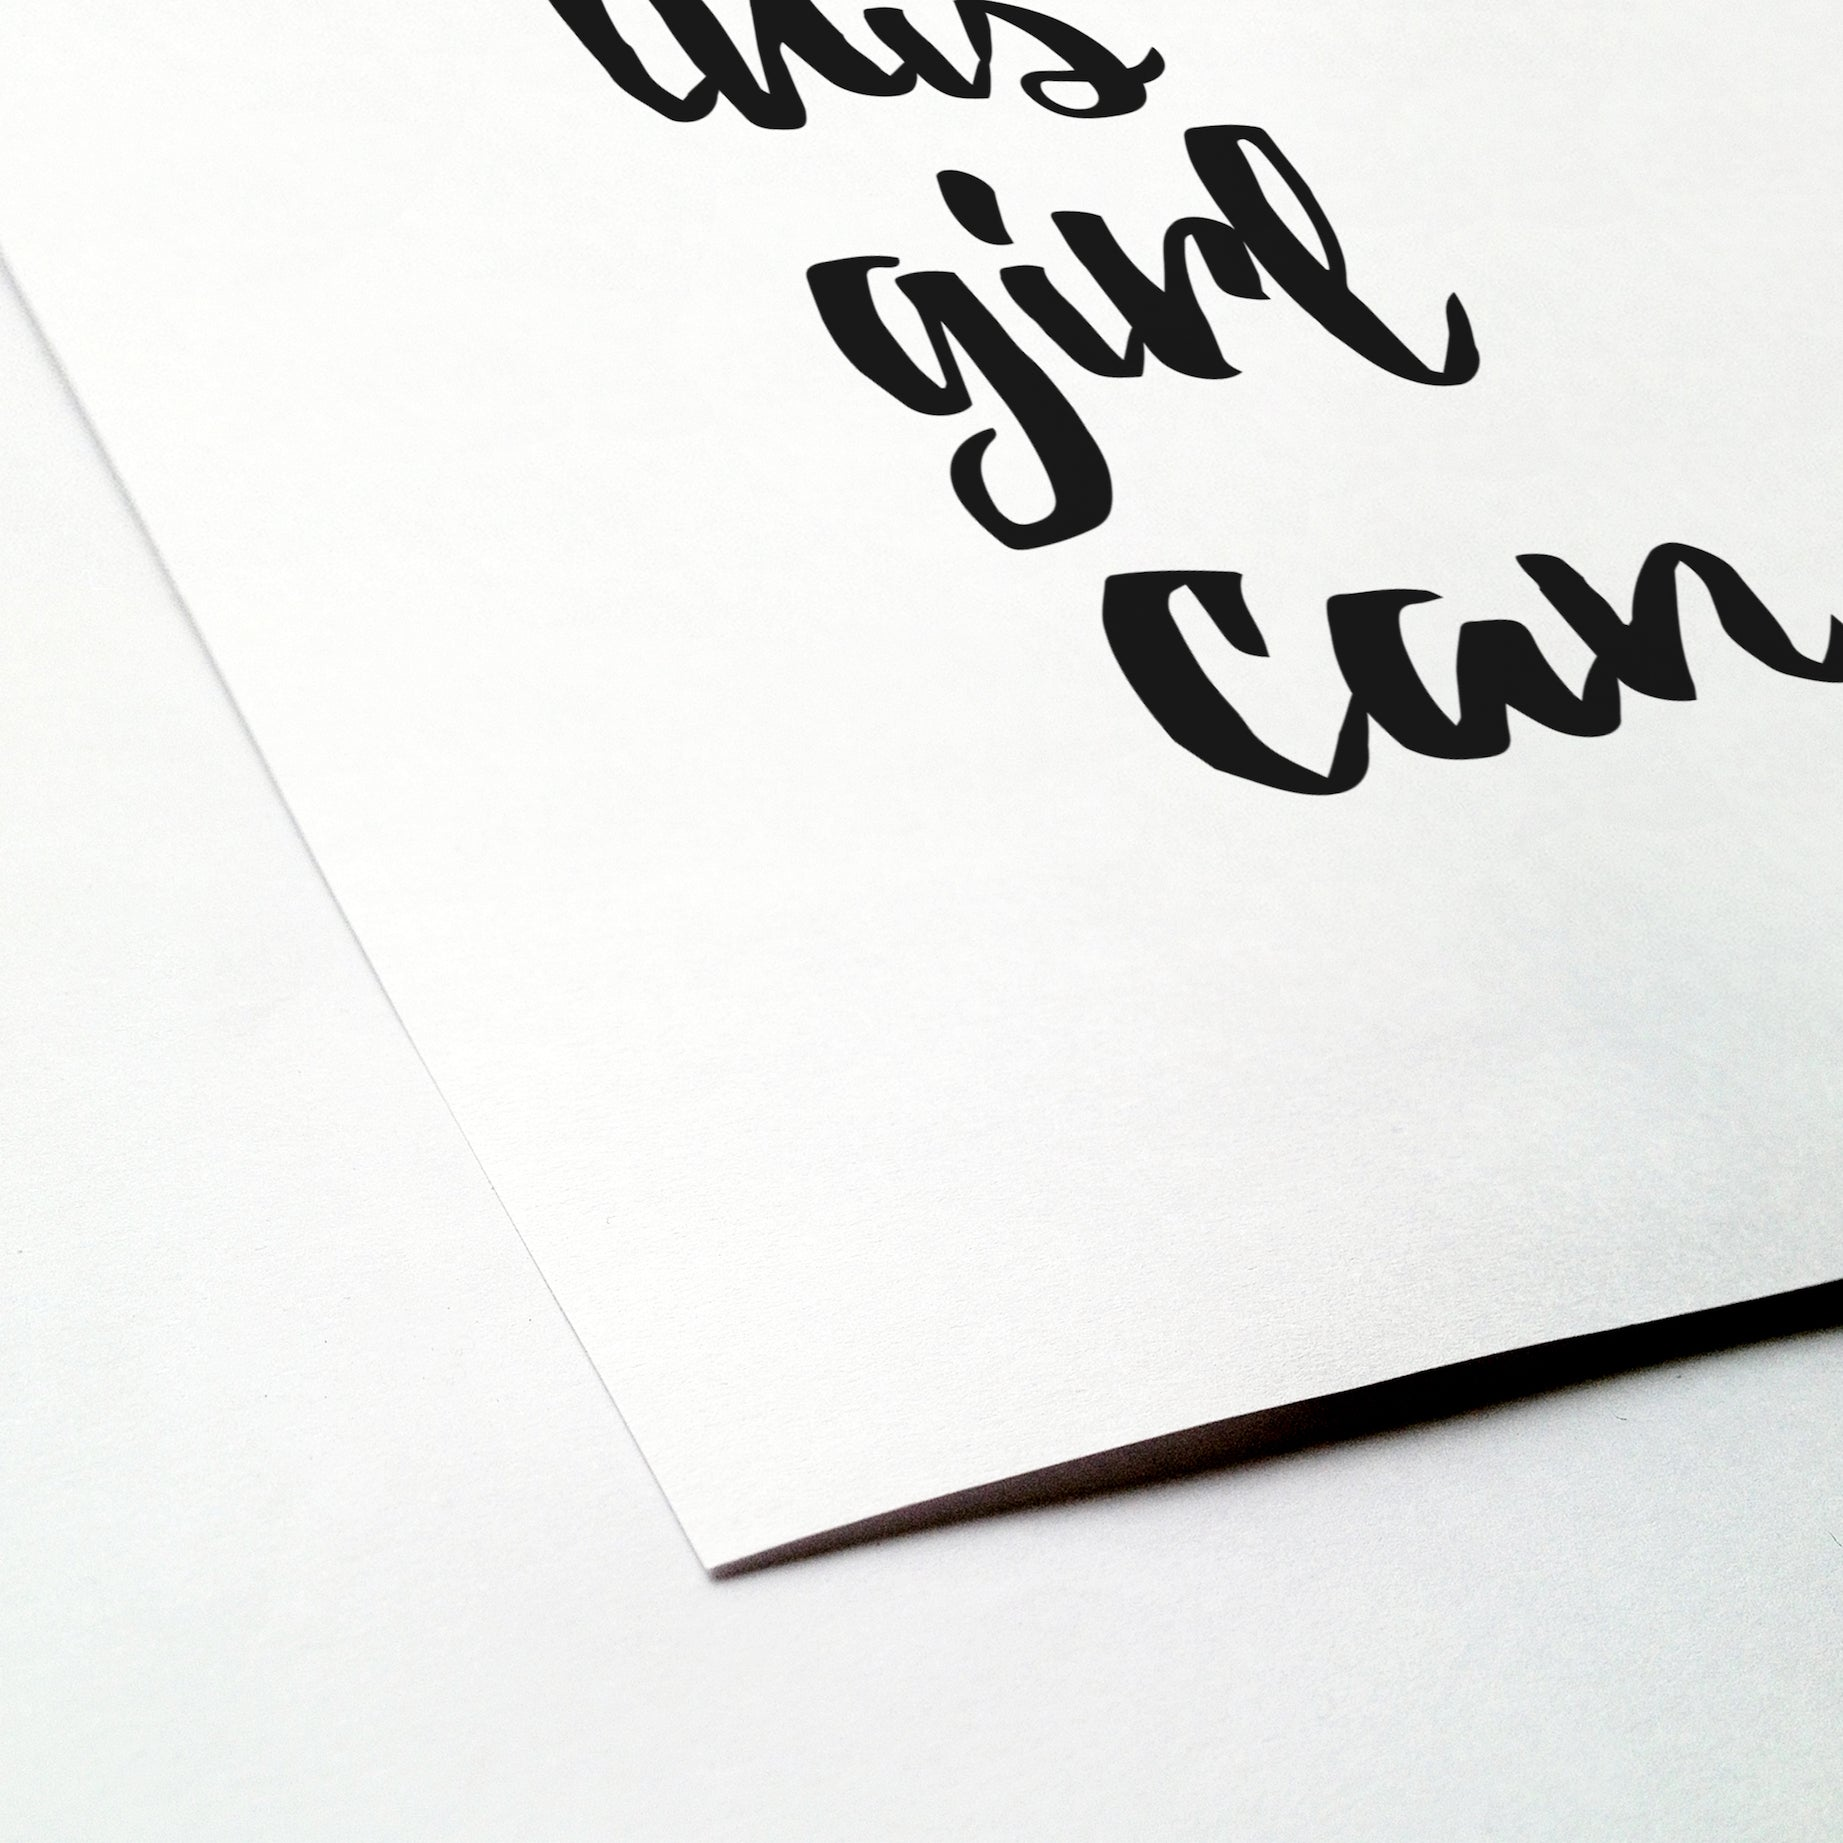 'This girl can' brush letter monochrome print | ink & white